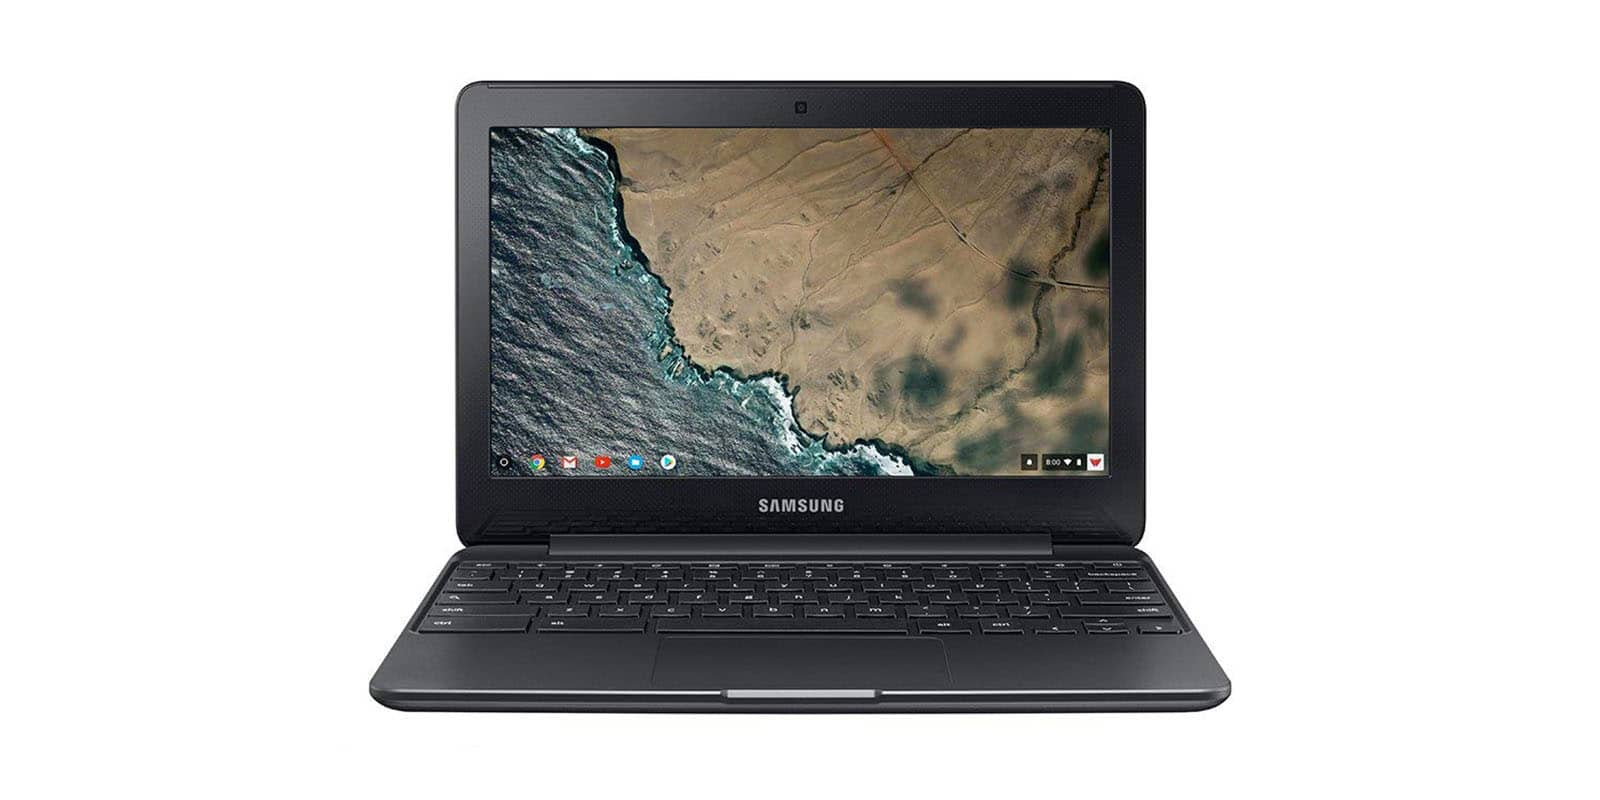 samsung chromebook 3 xe500c13-k06us featured